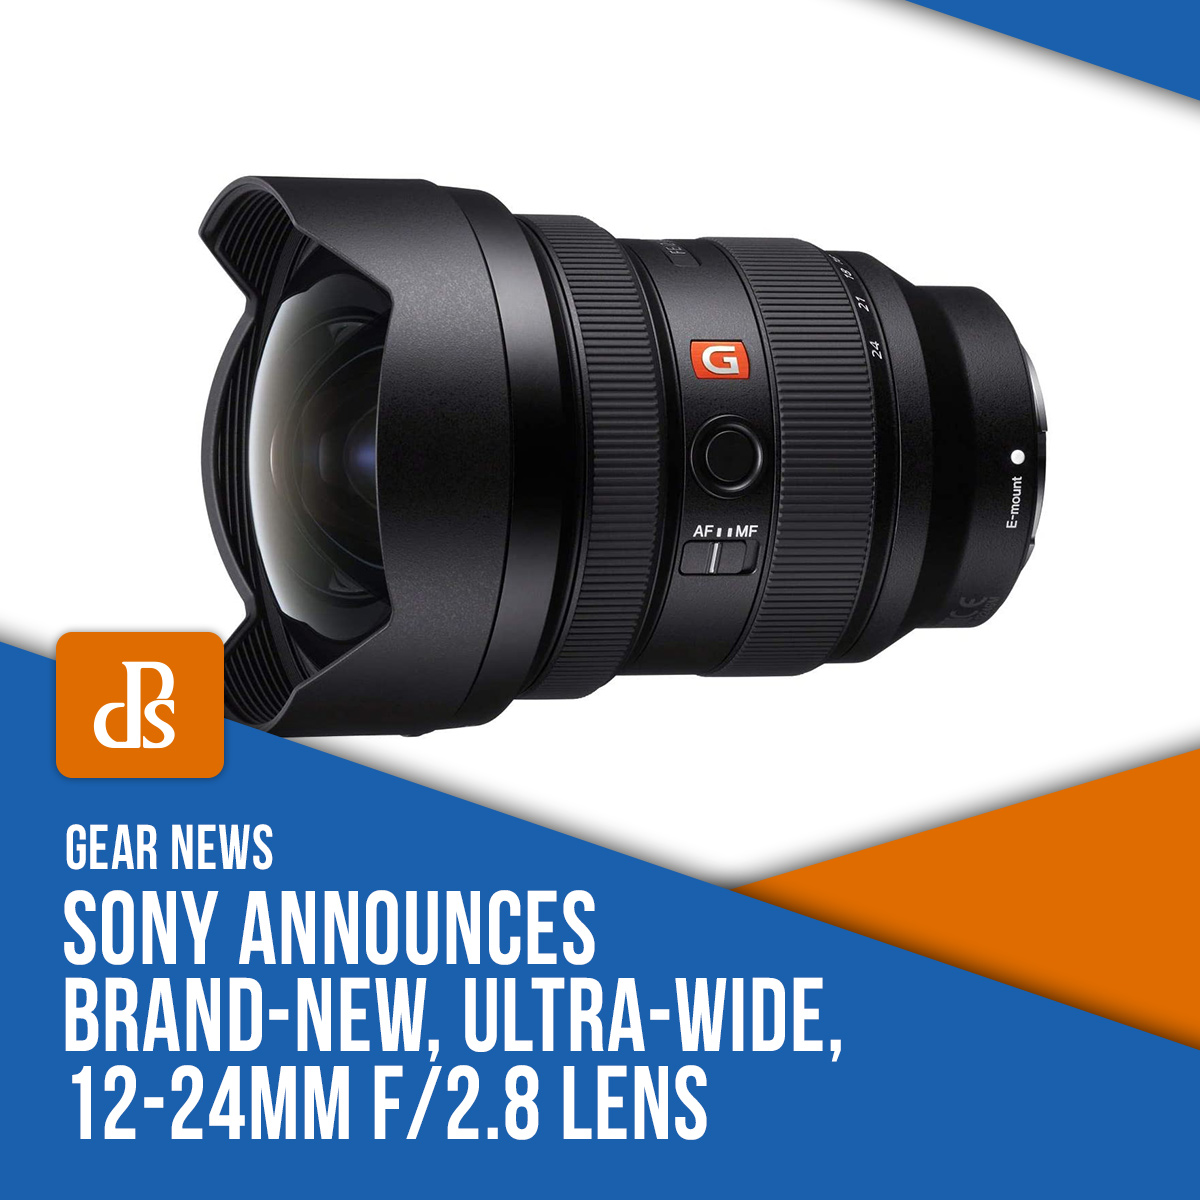 dps news sony 12-24mm f/2.8 lens announcement